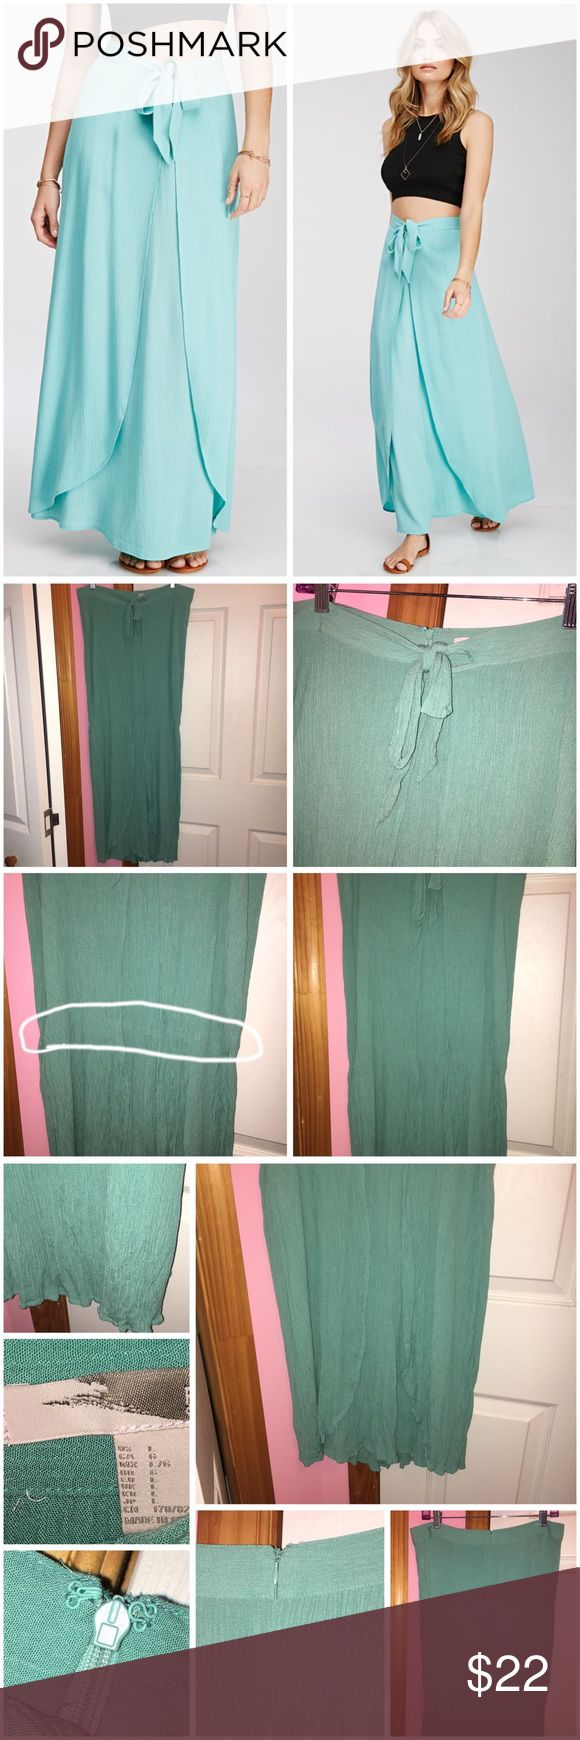 """Tulip Front Maxi Skirt Never worn; just washed. Does have hanging marks and does have a cease (circled in first photo). Forever 21 contemporary skirt. Color is sea foam. It's more green than what the stock photos shows. Tulip front with a self-tie bow at waist. Crinkled woven fabric. Concealed back zipper. Unlined. 100% rayon. Length is approx 40"""" and waist is approx 32"""" laying flat. ❌NO TRADES❌ Forever 21 Skirts Maxi"""